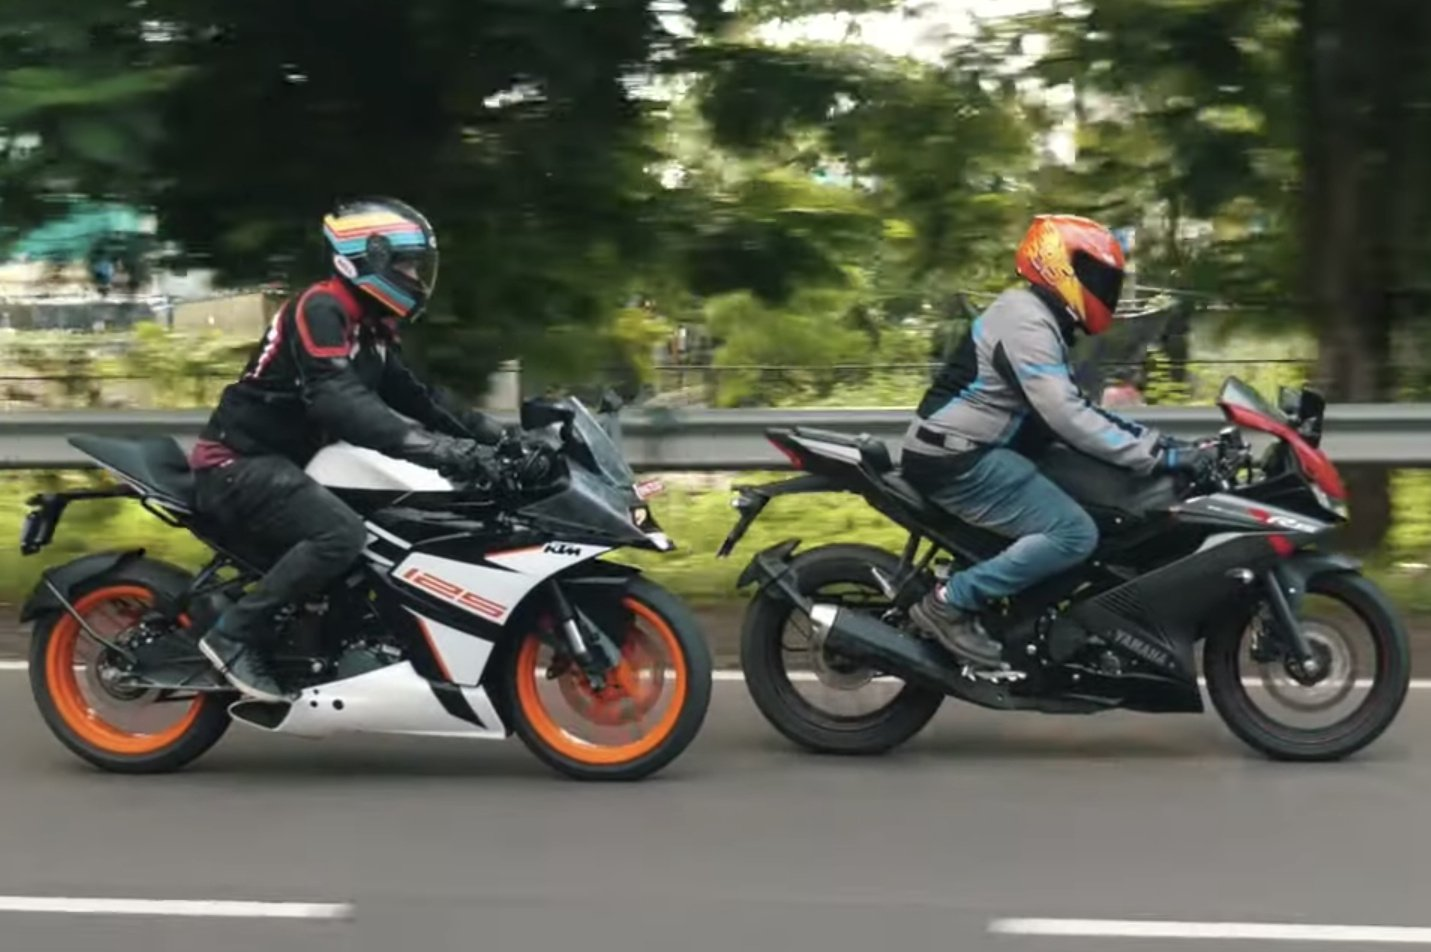 KTM RC 125 vs Yamaha R15 V3